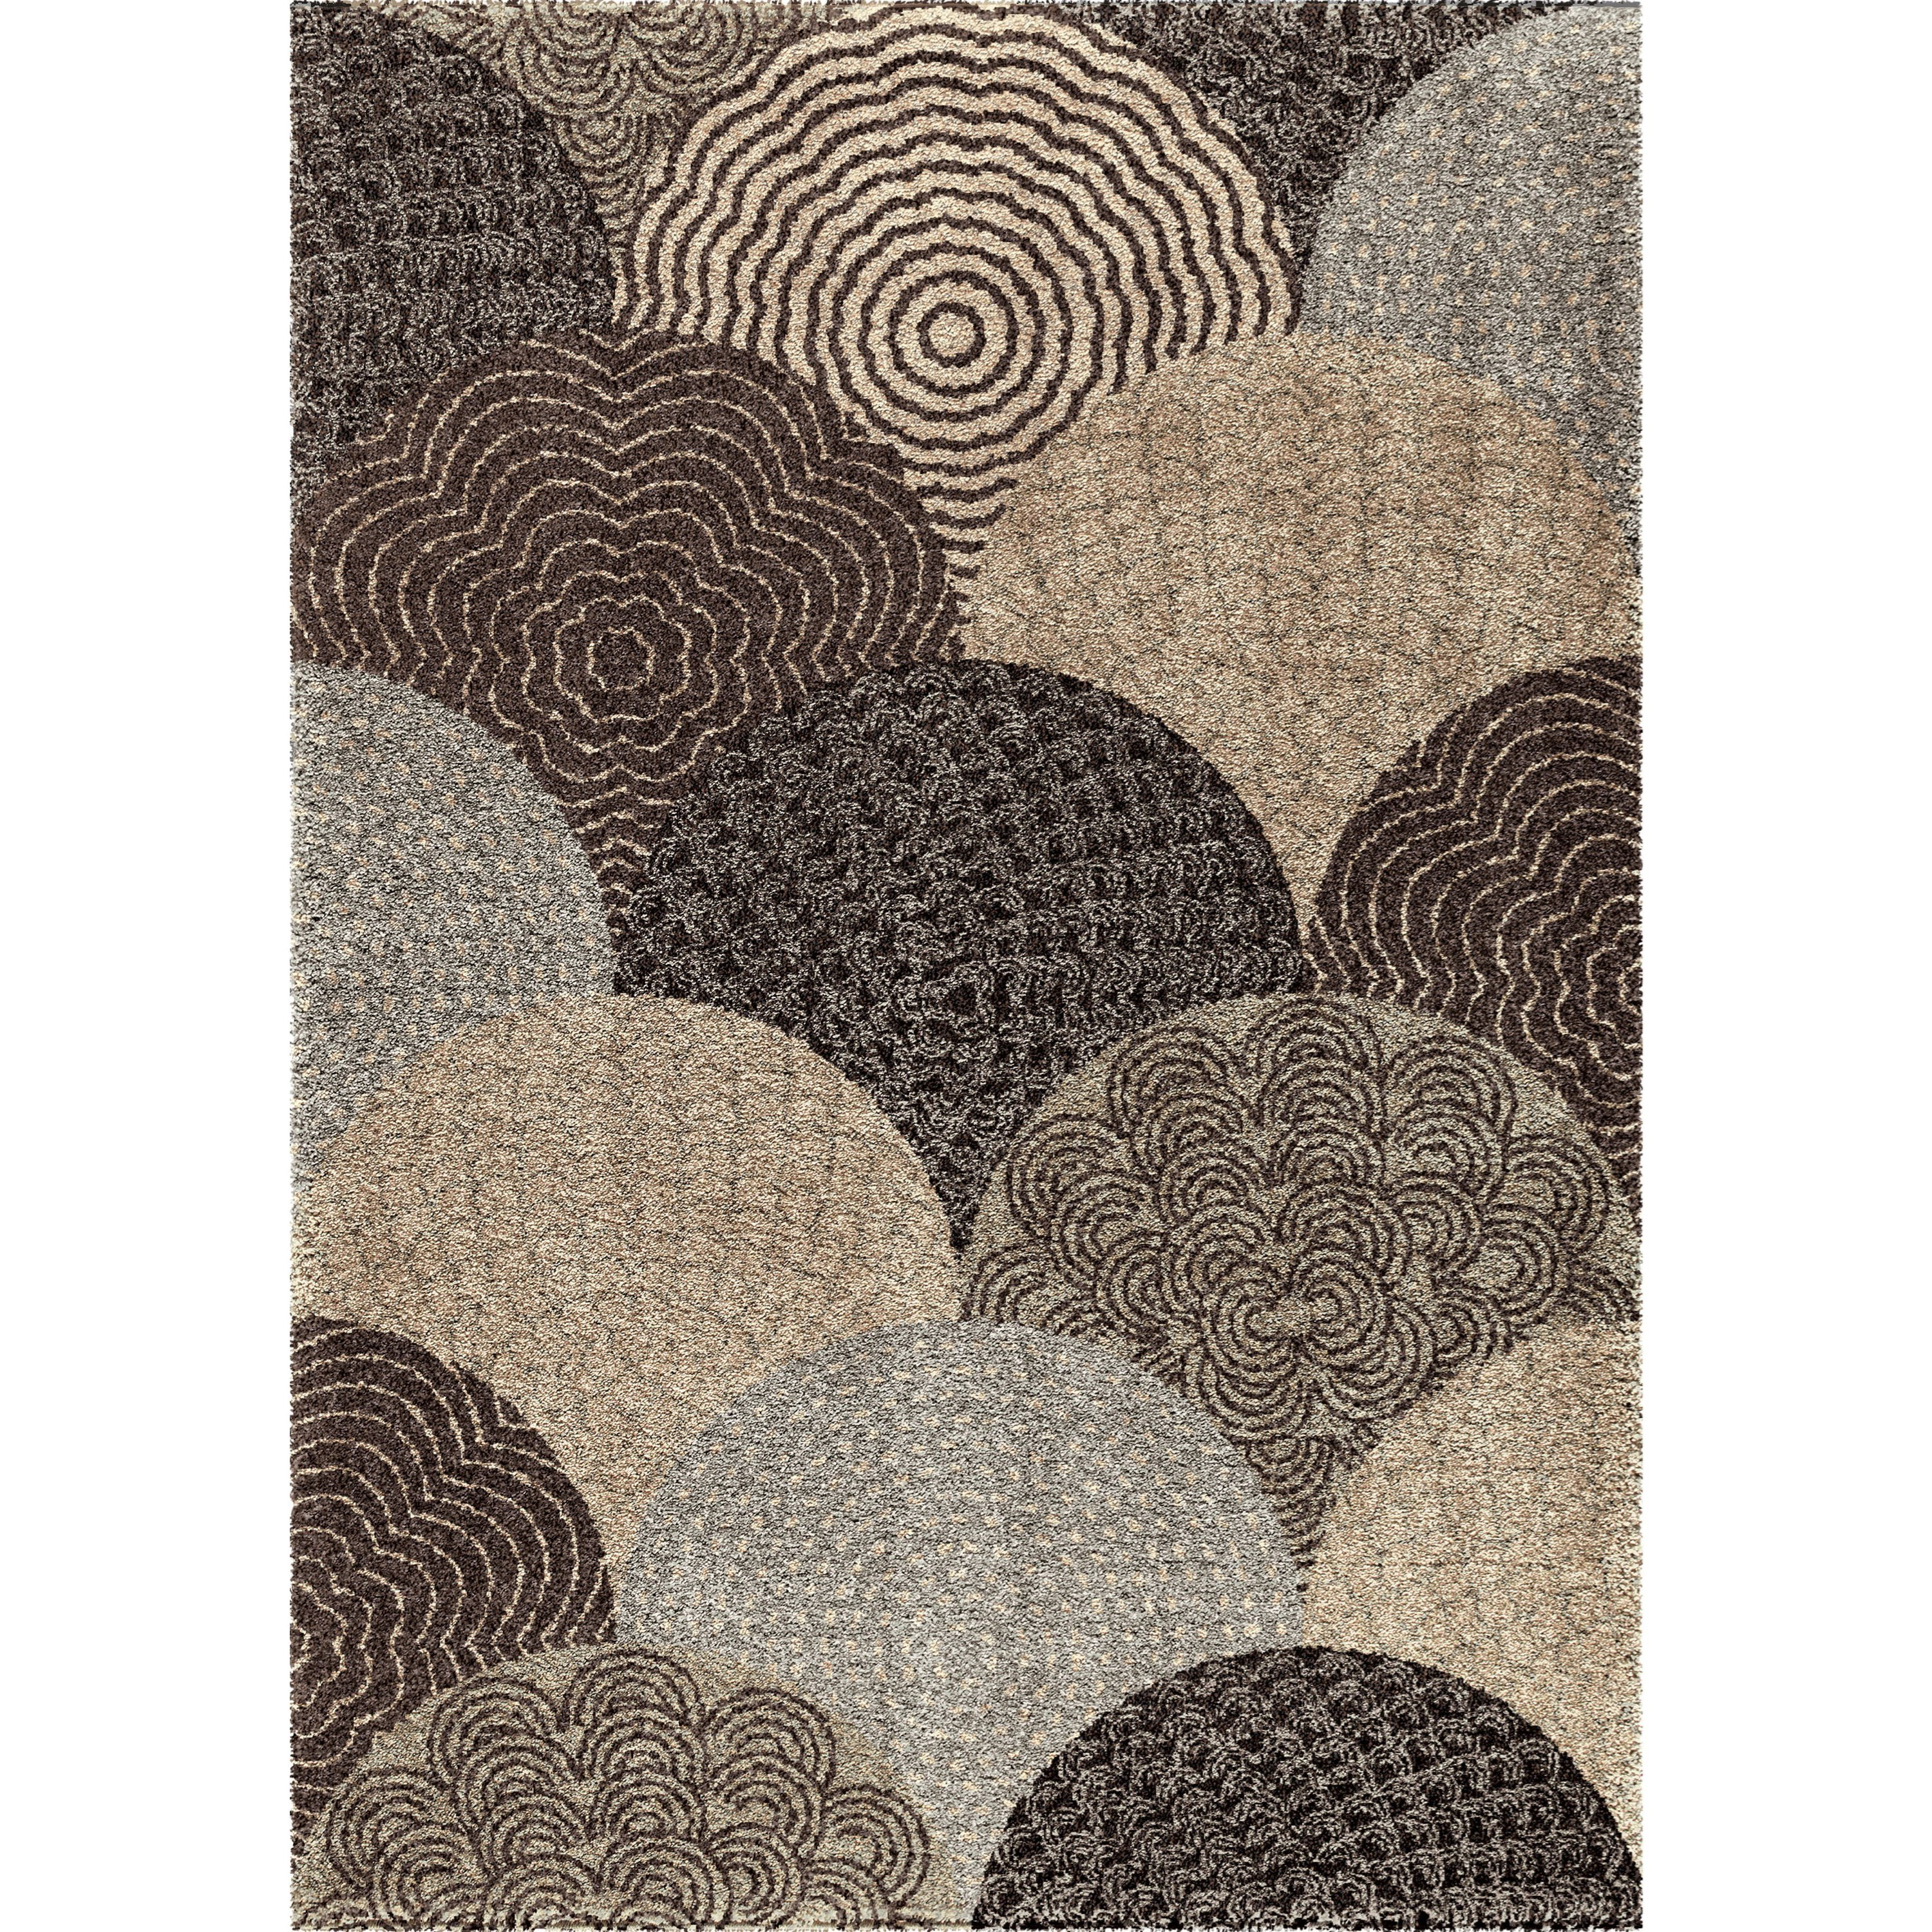 """Wild Weave Oystershell Seal Black 5'3"""" x 7'6"""" Rug by Orian Rugs at Mueller Furniture"""